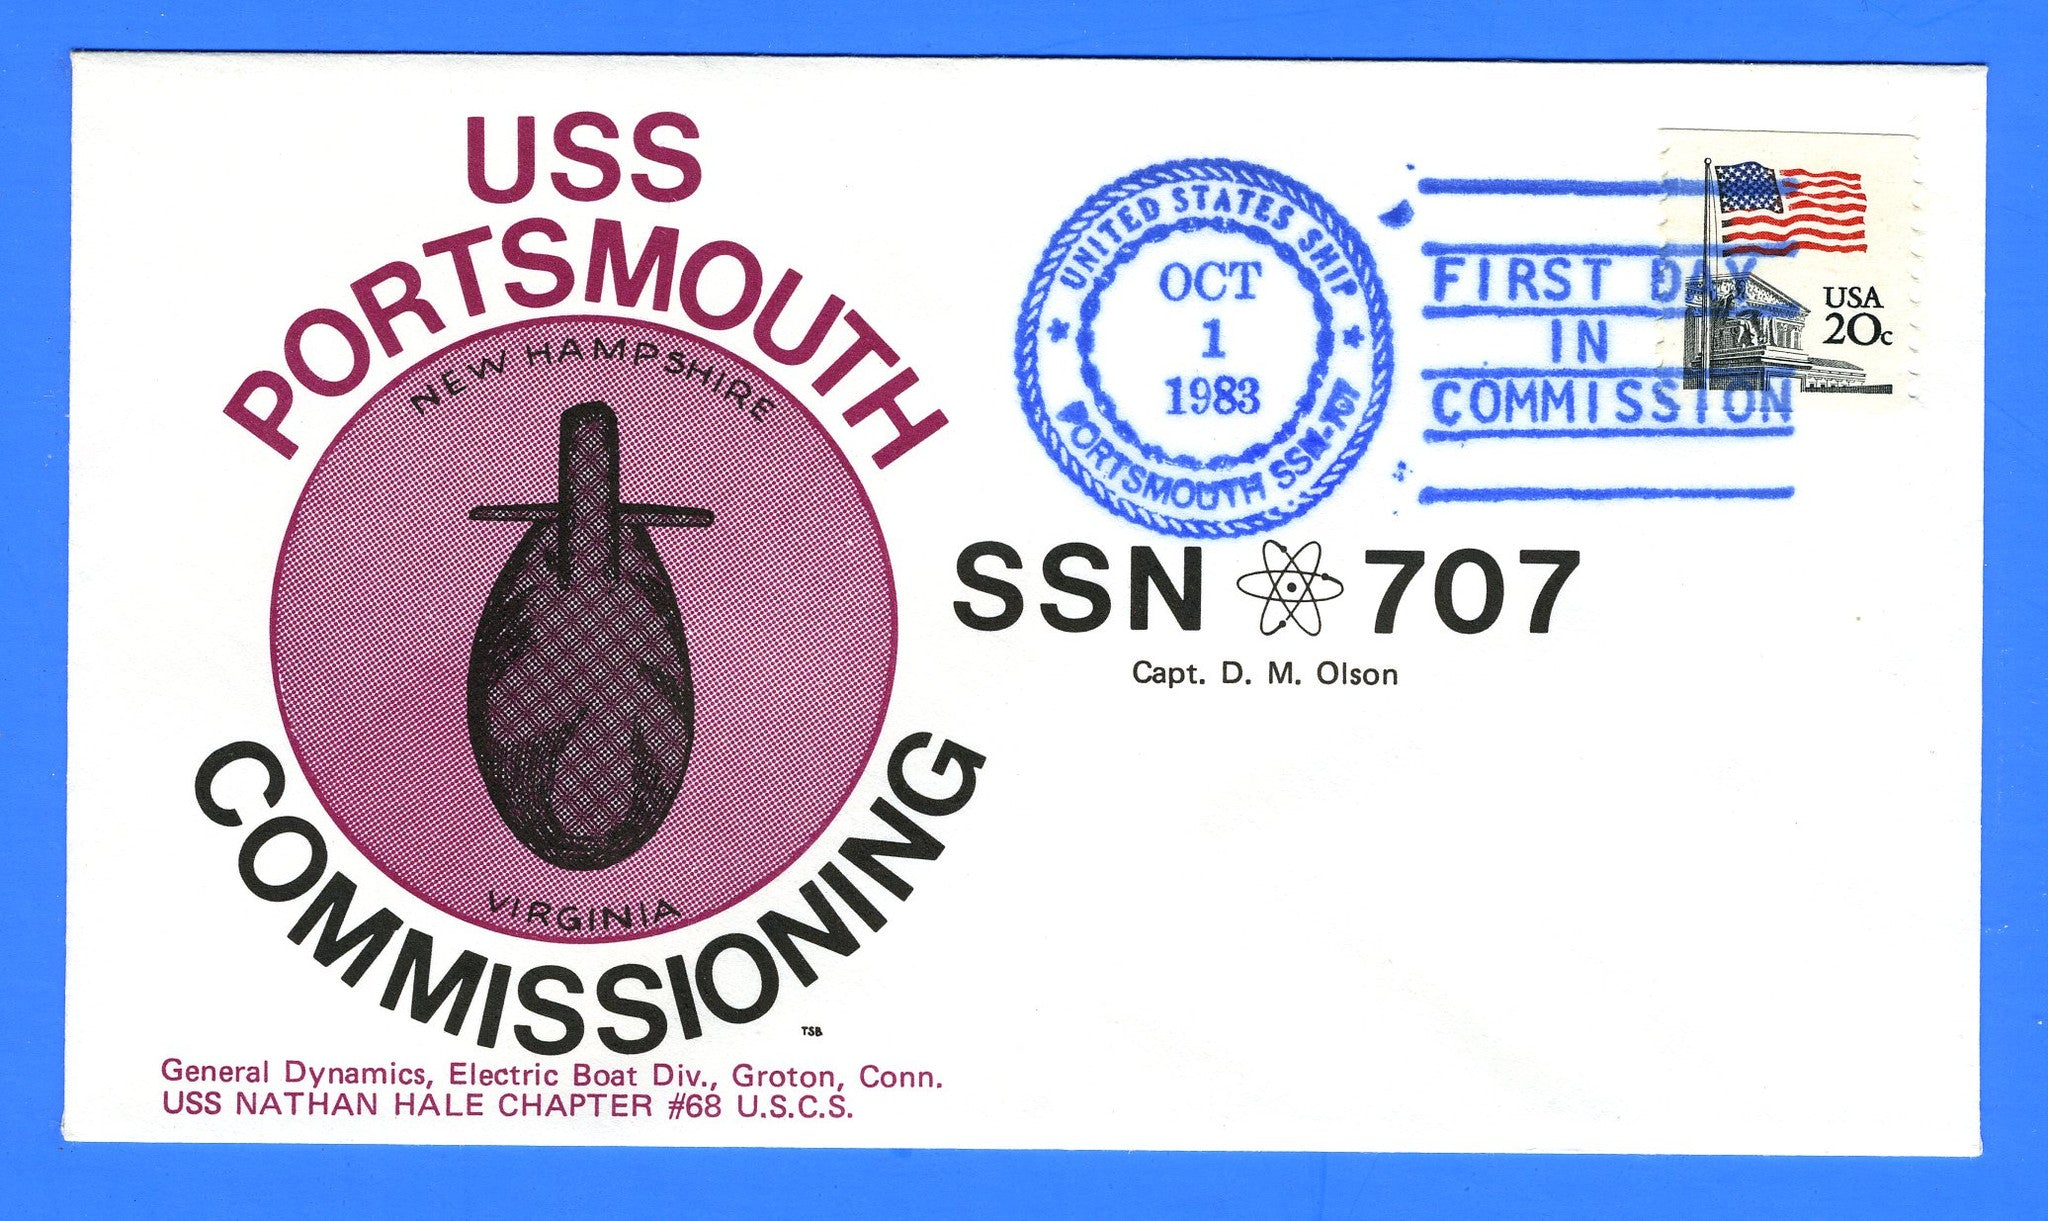 USS Portsmouth SSN-707 Commissioned October 1, 1983